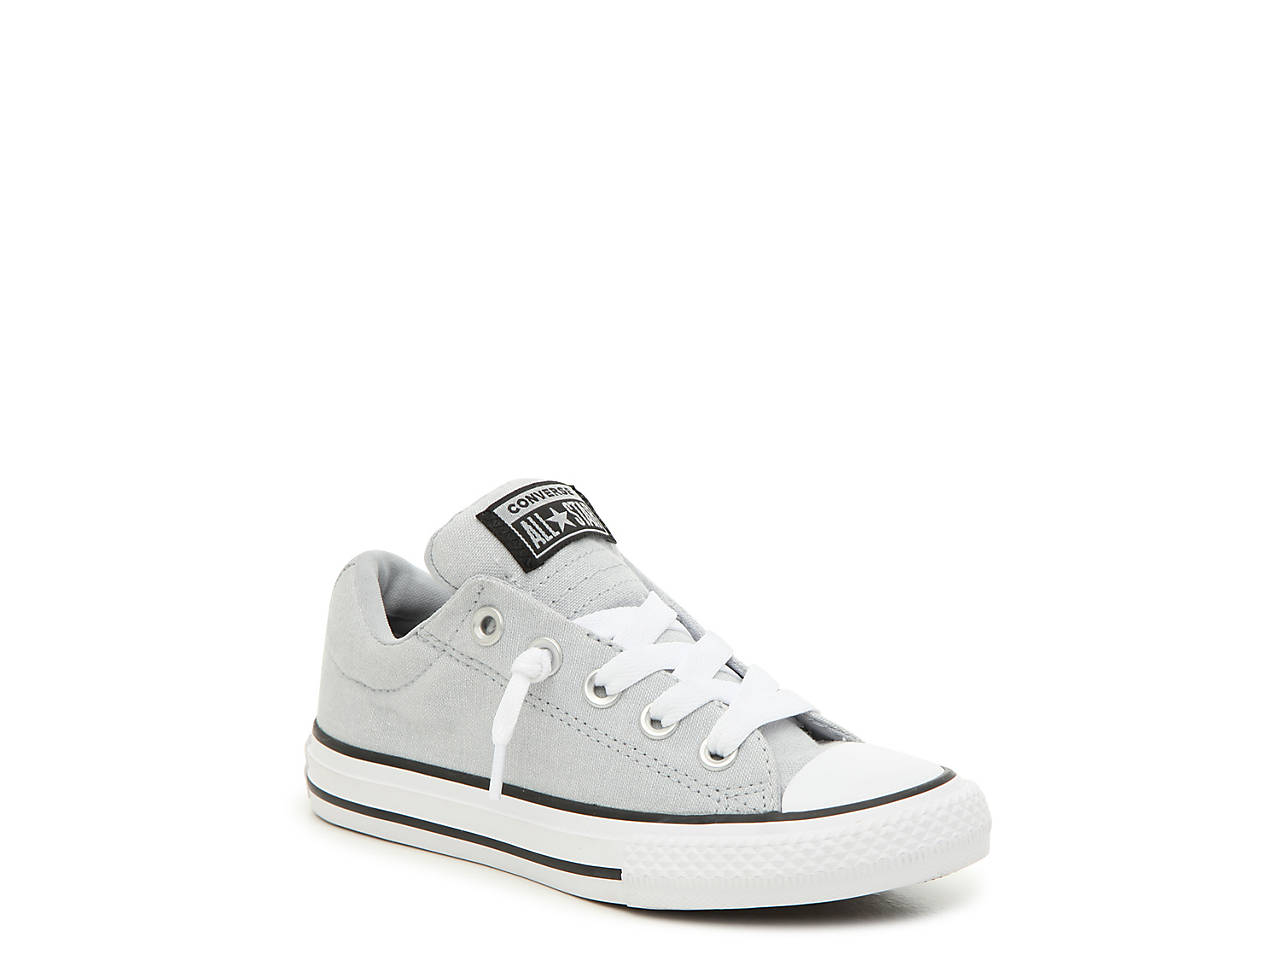 b24b686780bf Converse. Chuck Taylor All Star Street Toddler   Youth Slip-On Sneaker